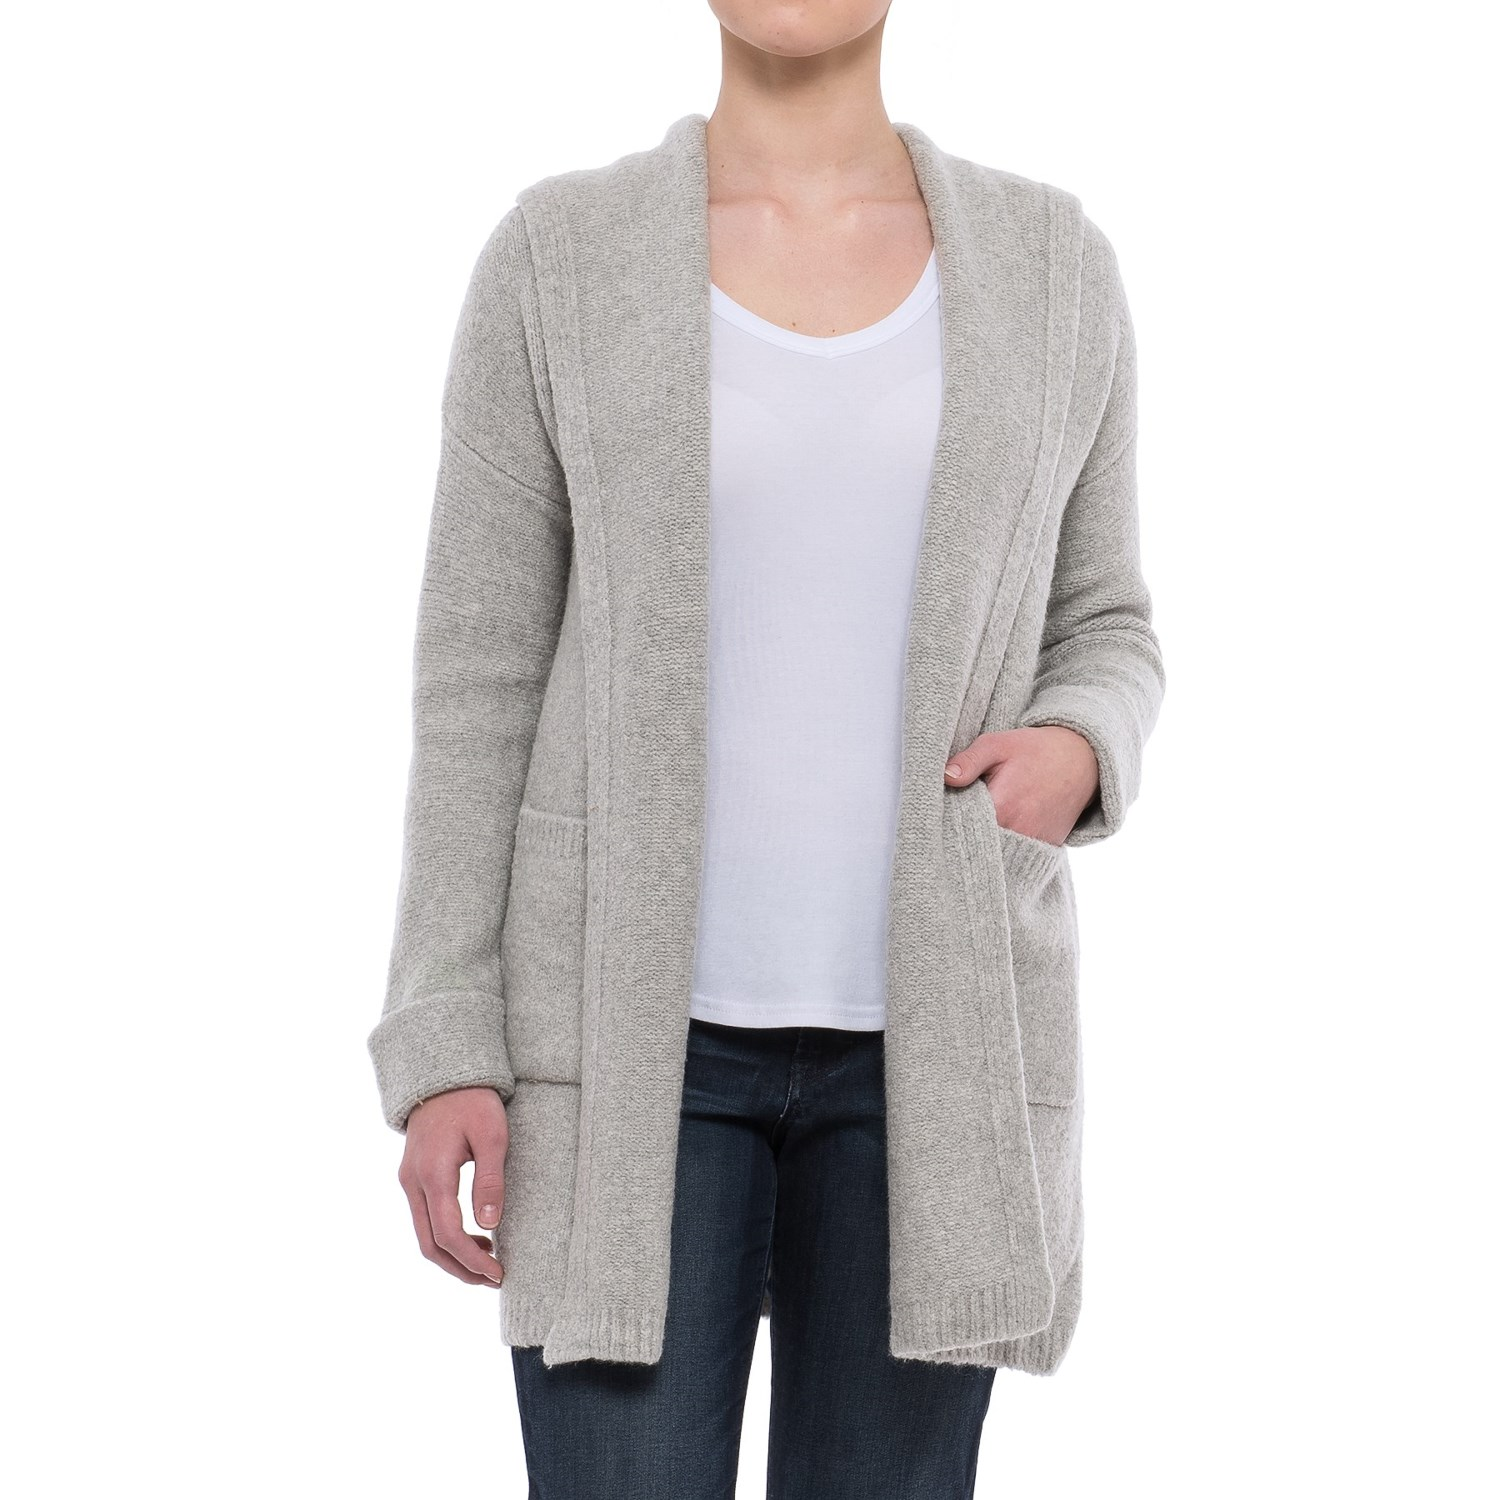 Tahari Oversized Hooded Cardigan Sweater (For Women) - Save 59%